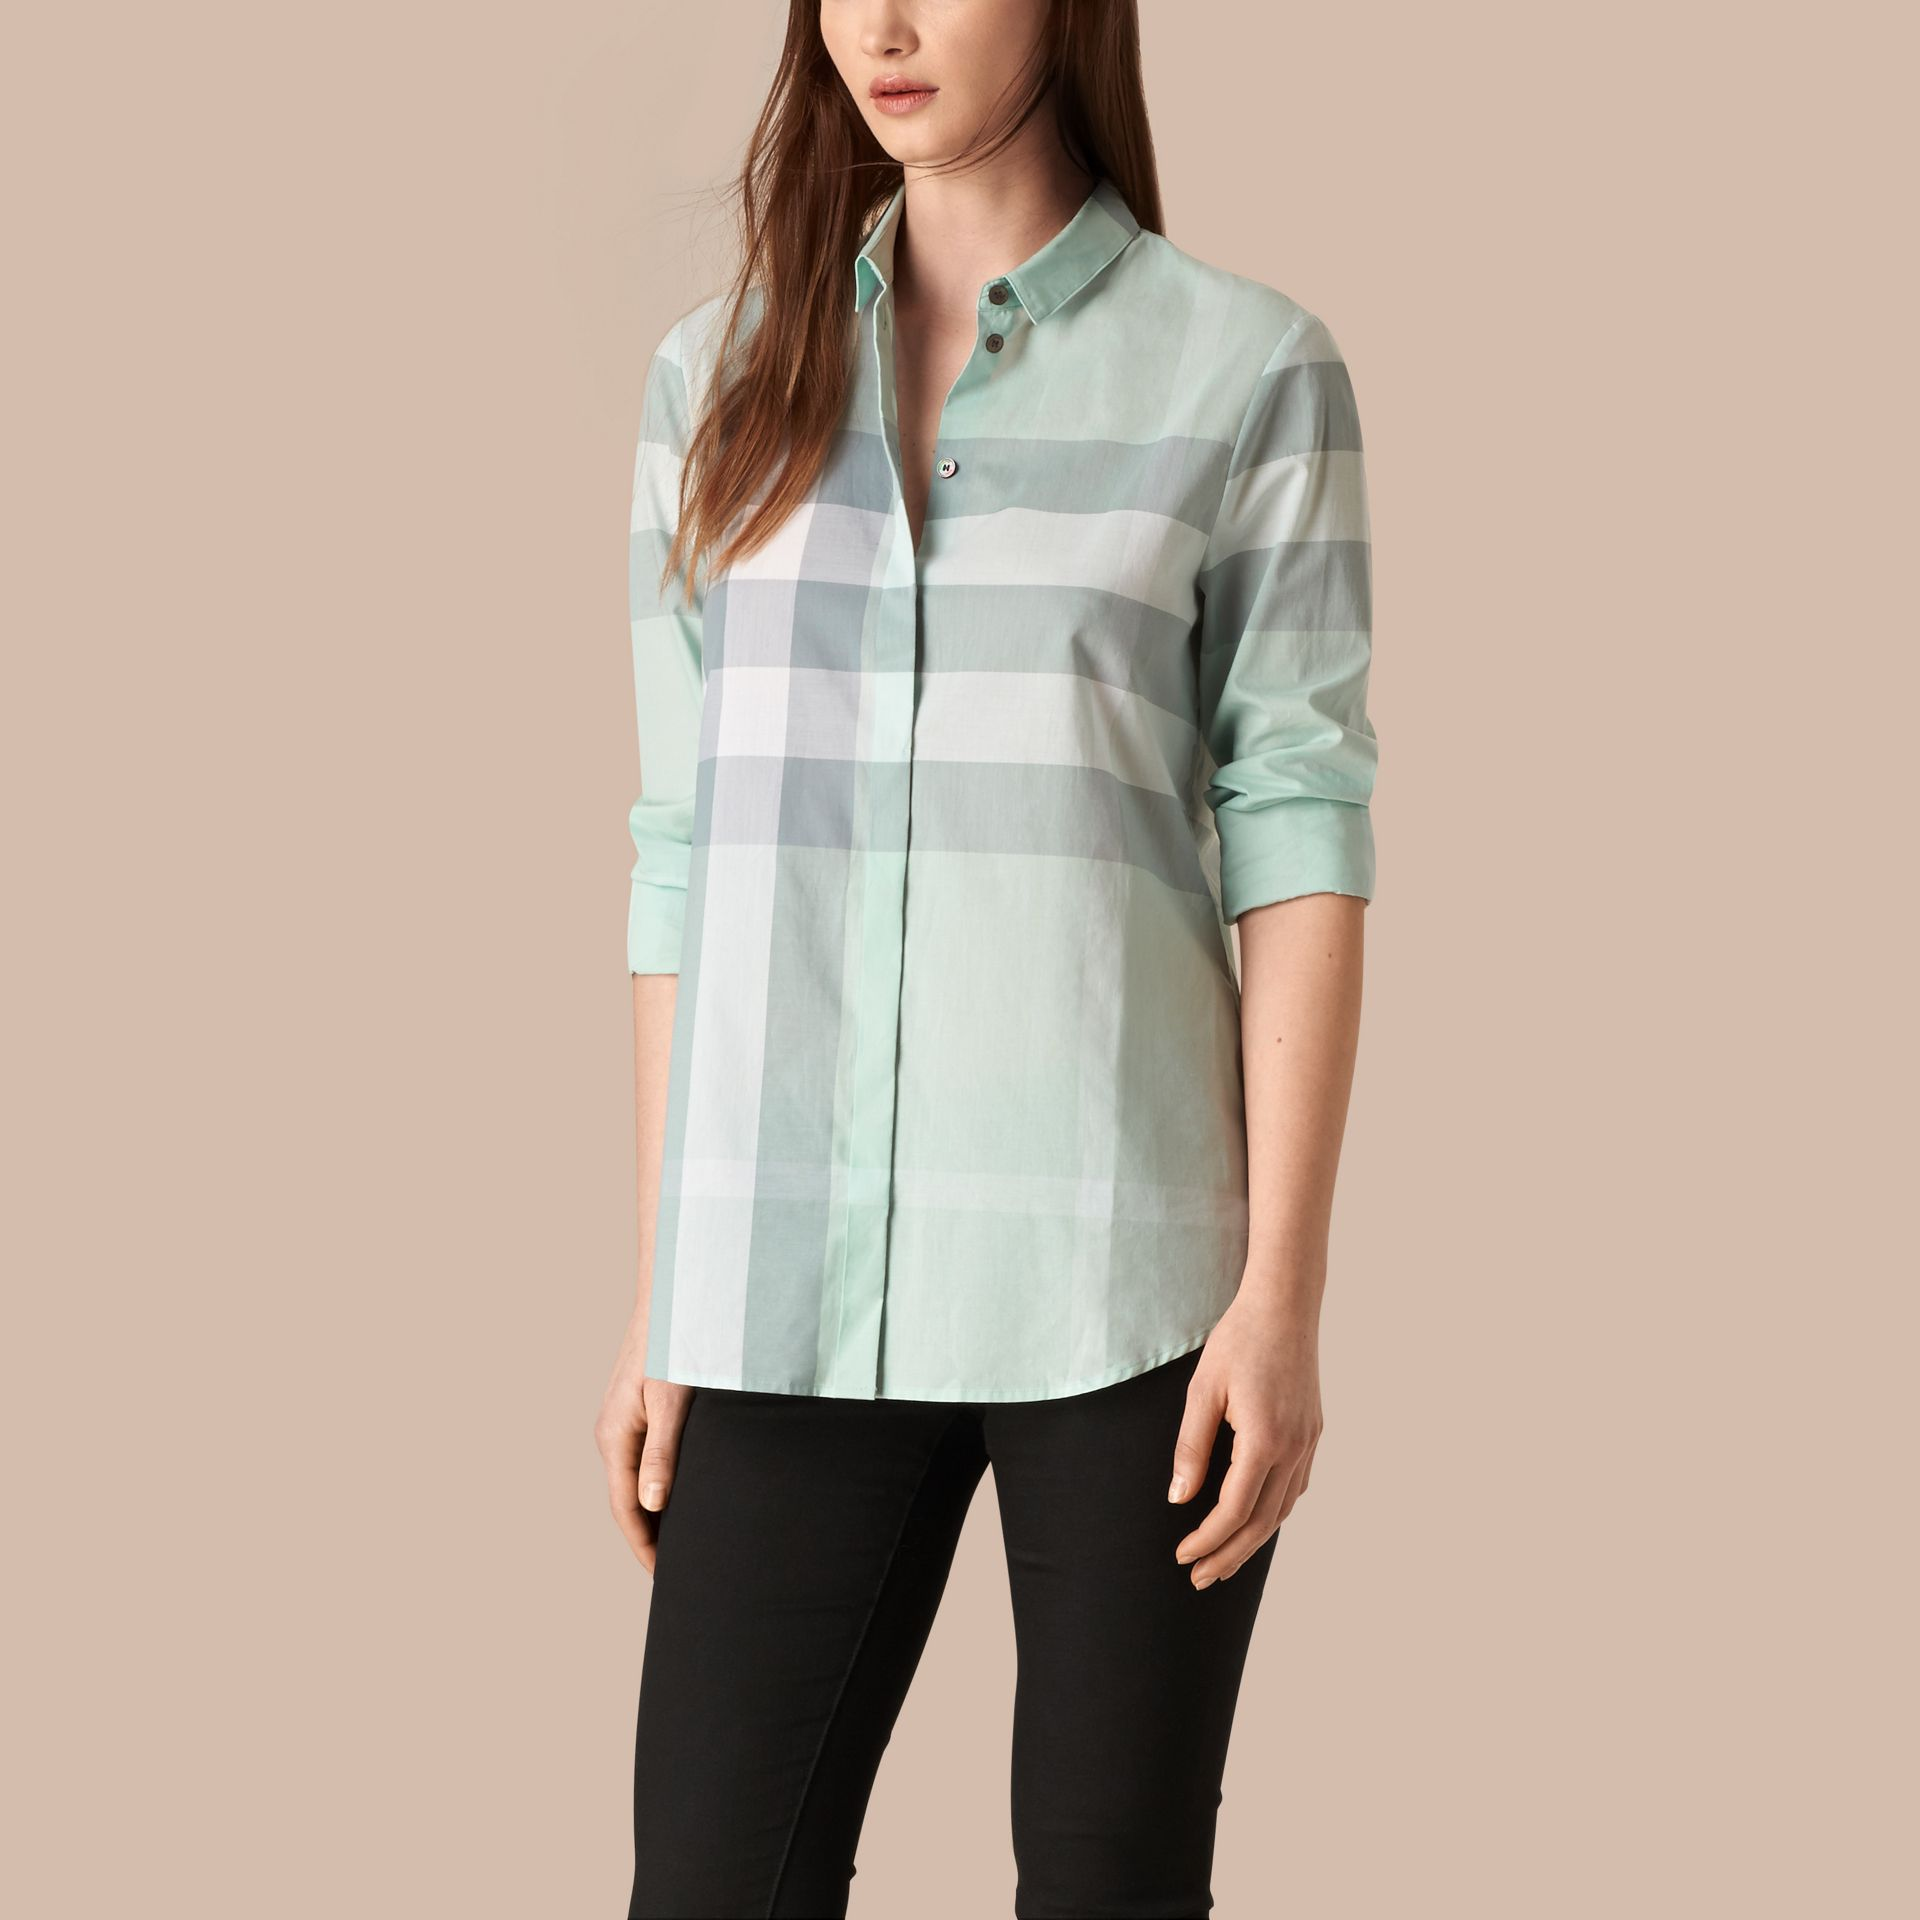 Powder blue Check Cotton Shirt Powder Blue - gallery image 1